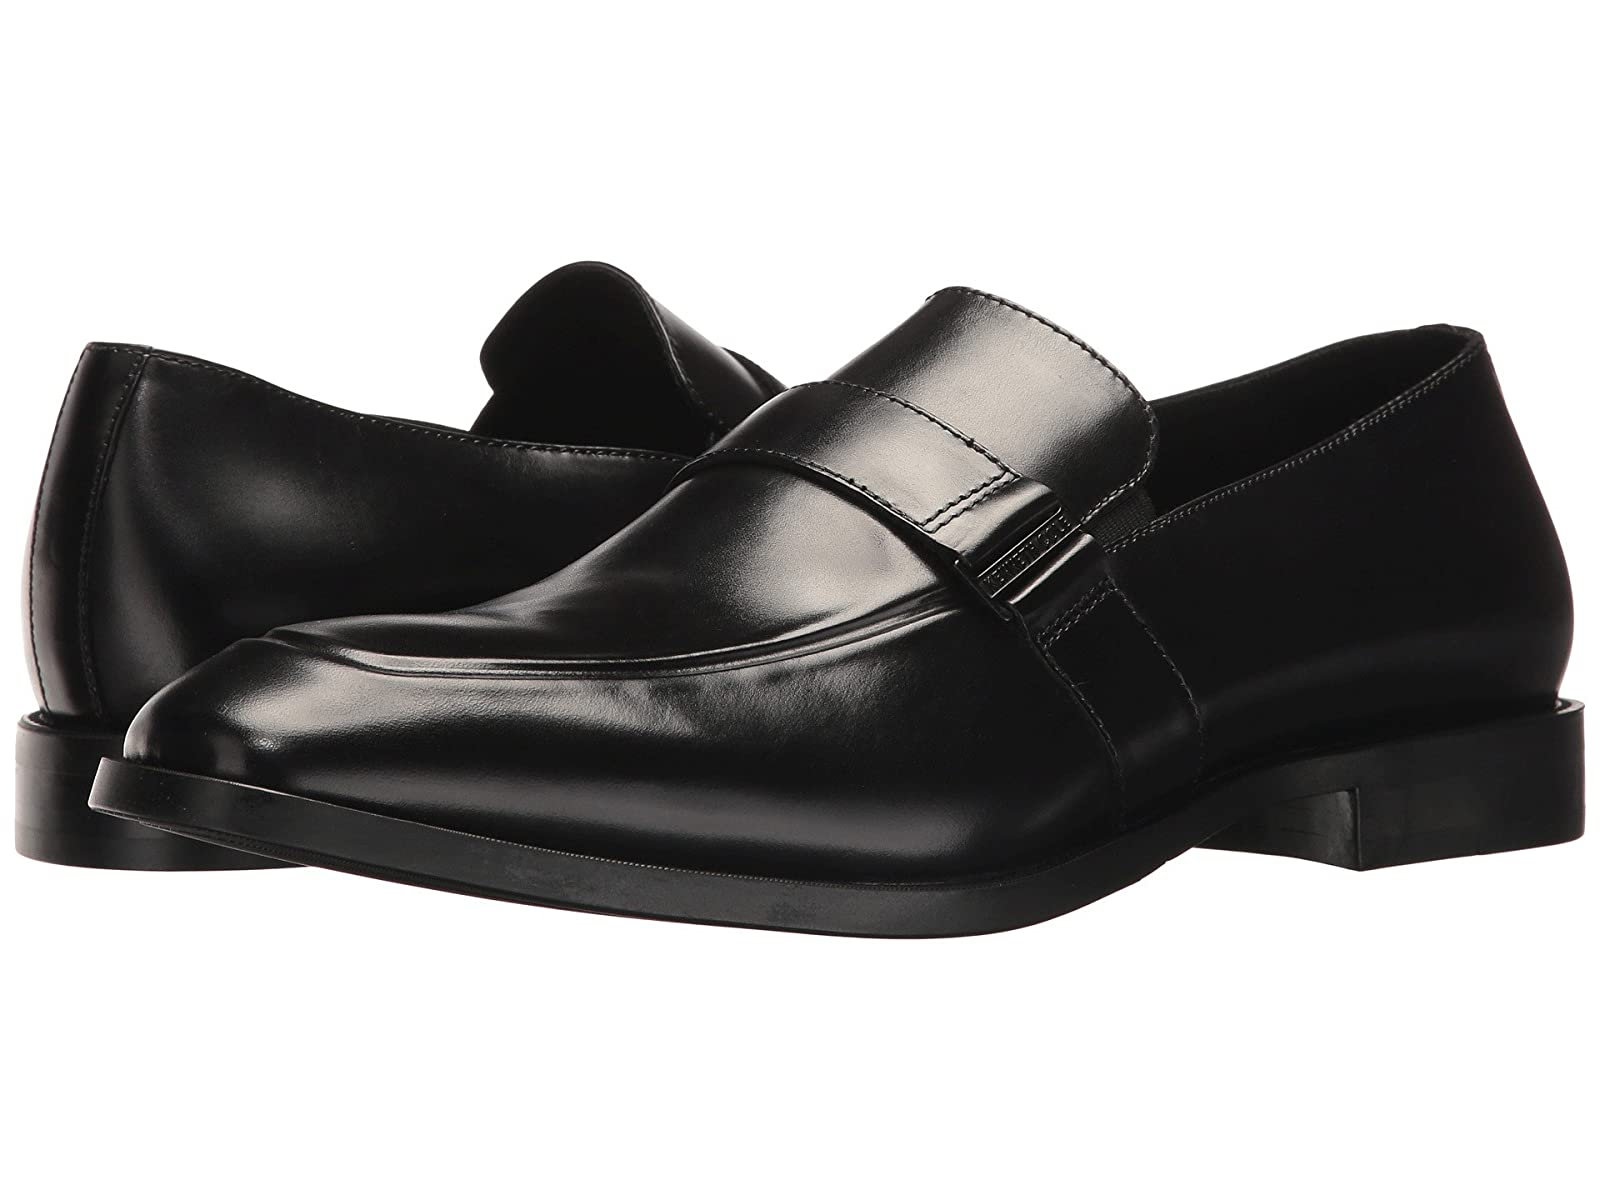 Kenneth Cole New York Design 10572Cheap and distinctive eye-catching shoes